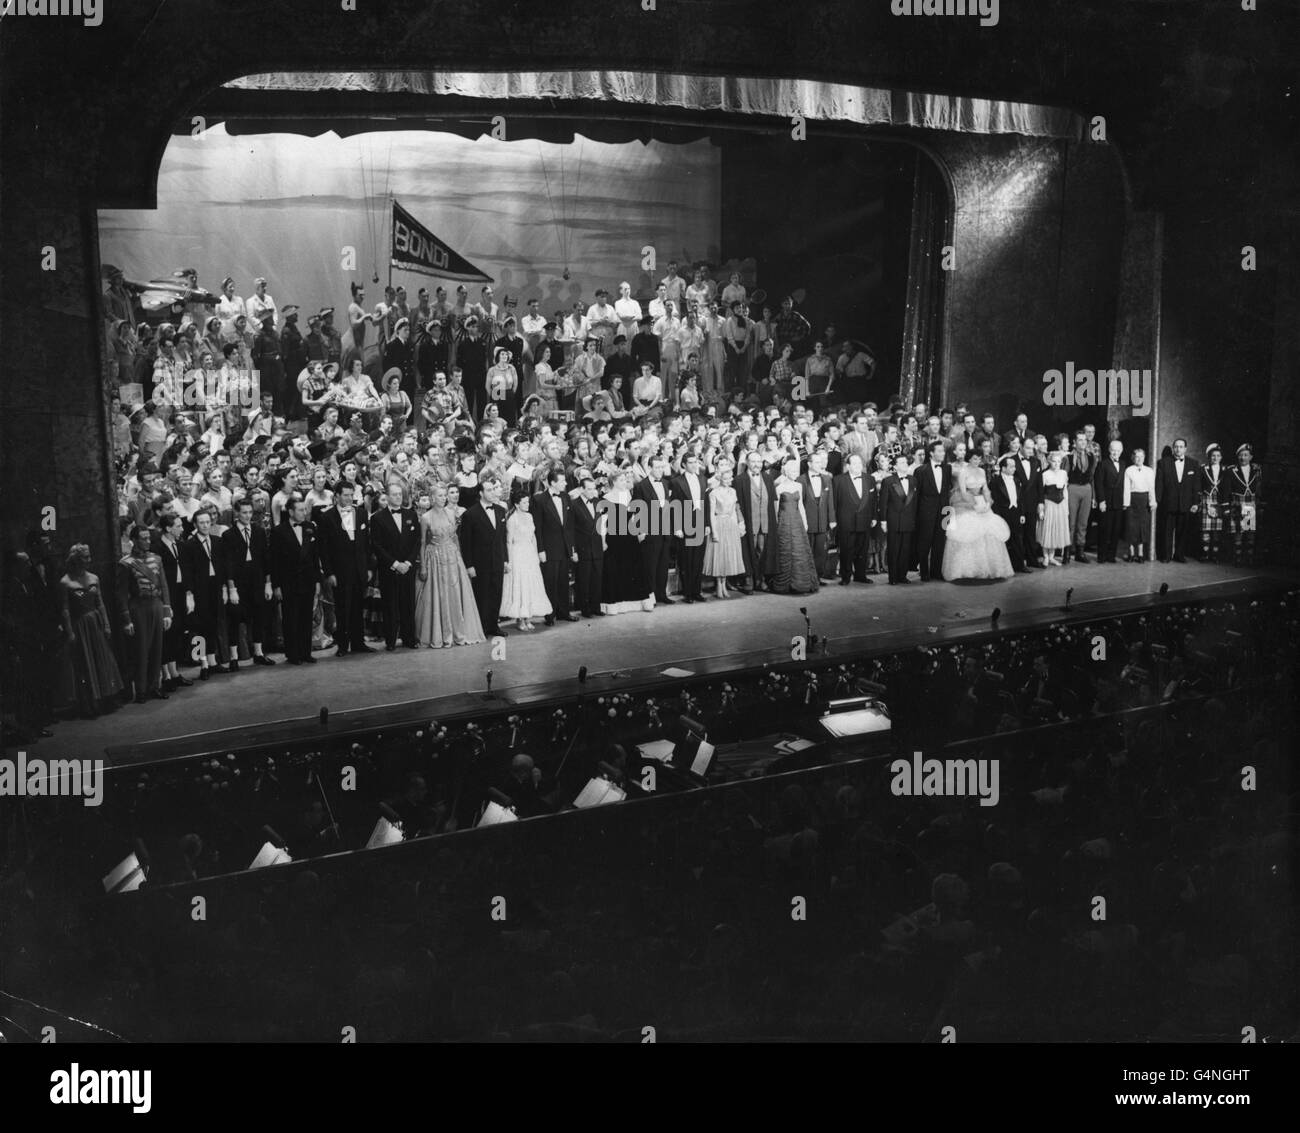 Theatre - Royal Command Variety Performance - Coliseum, London - Stock Image